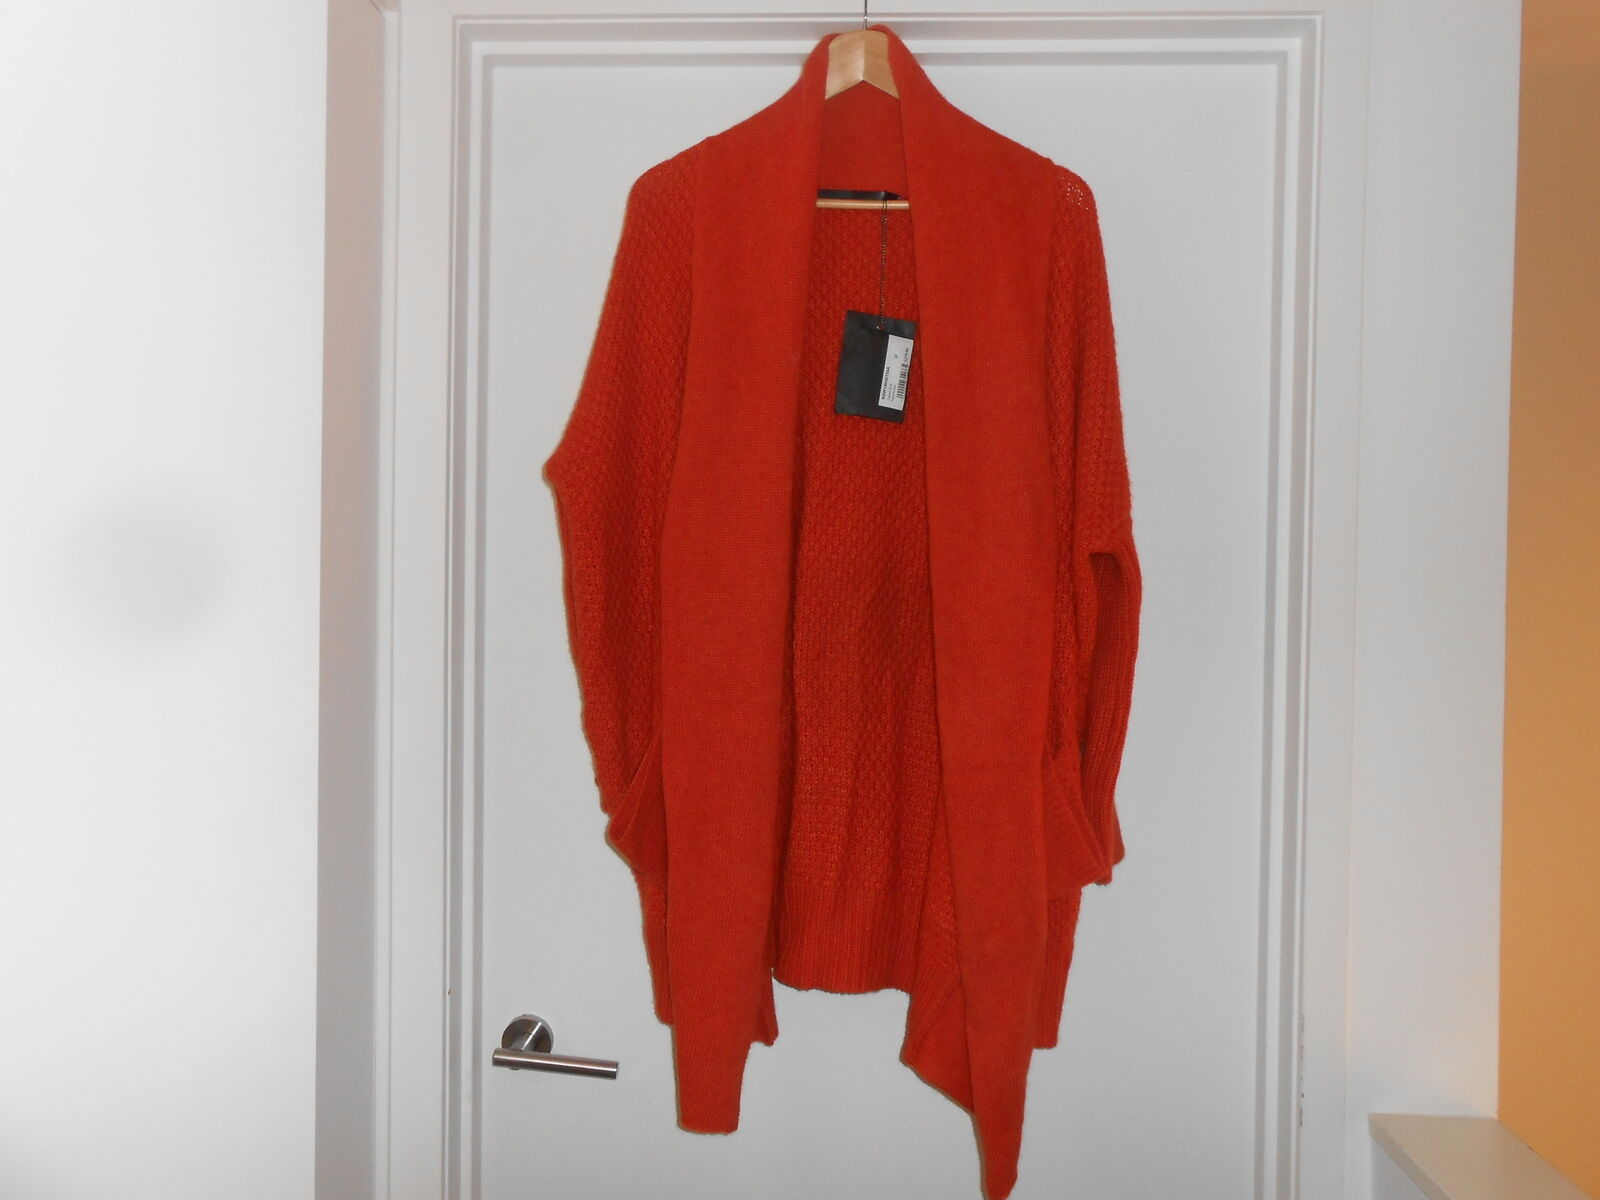 NIKEL AND SOLE CAPELO KNIT (SIZE MEDIUM) BNWT